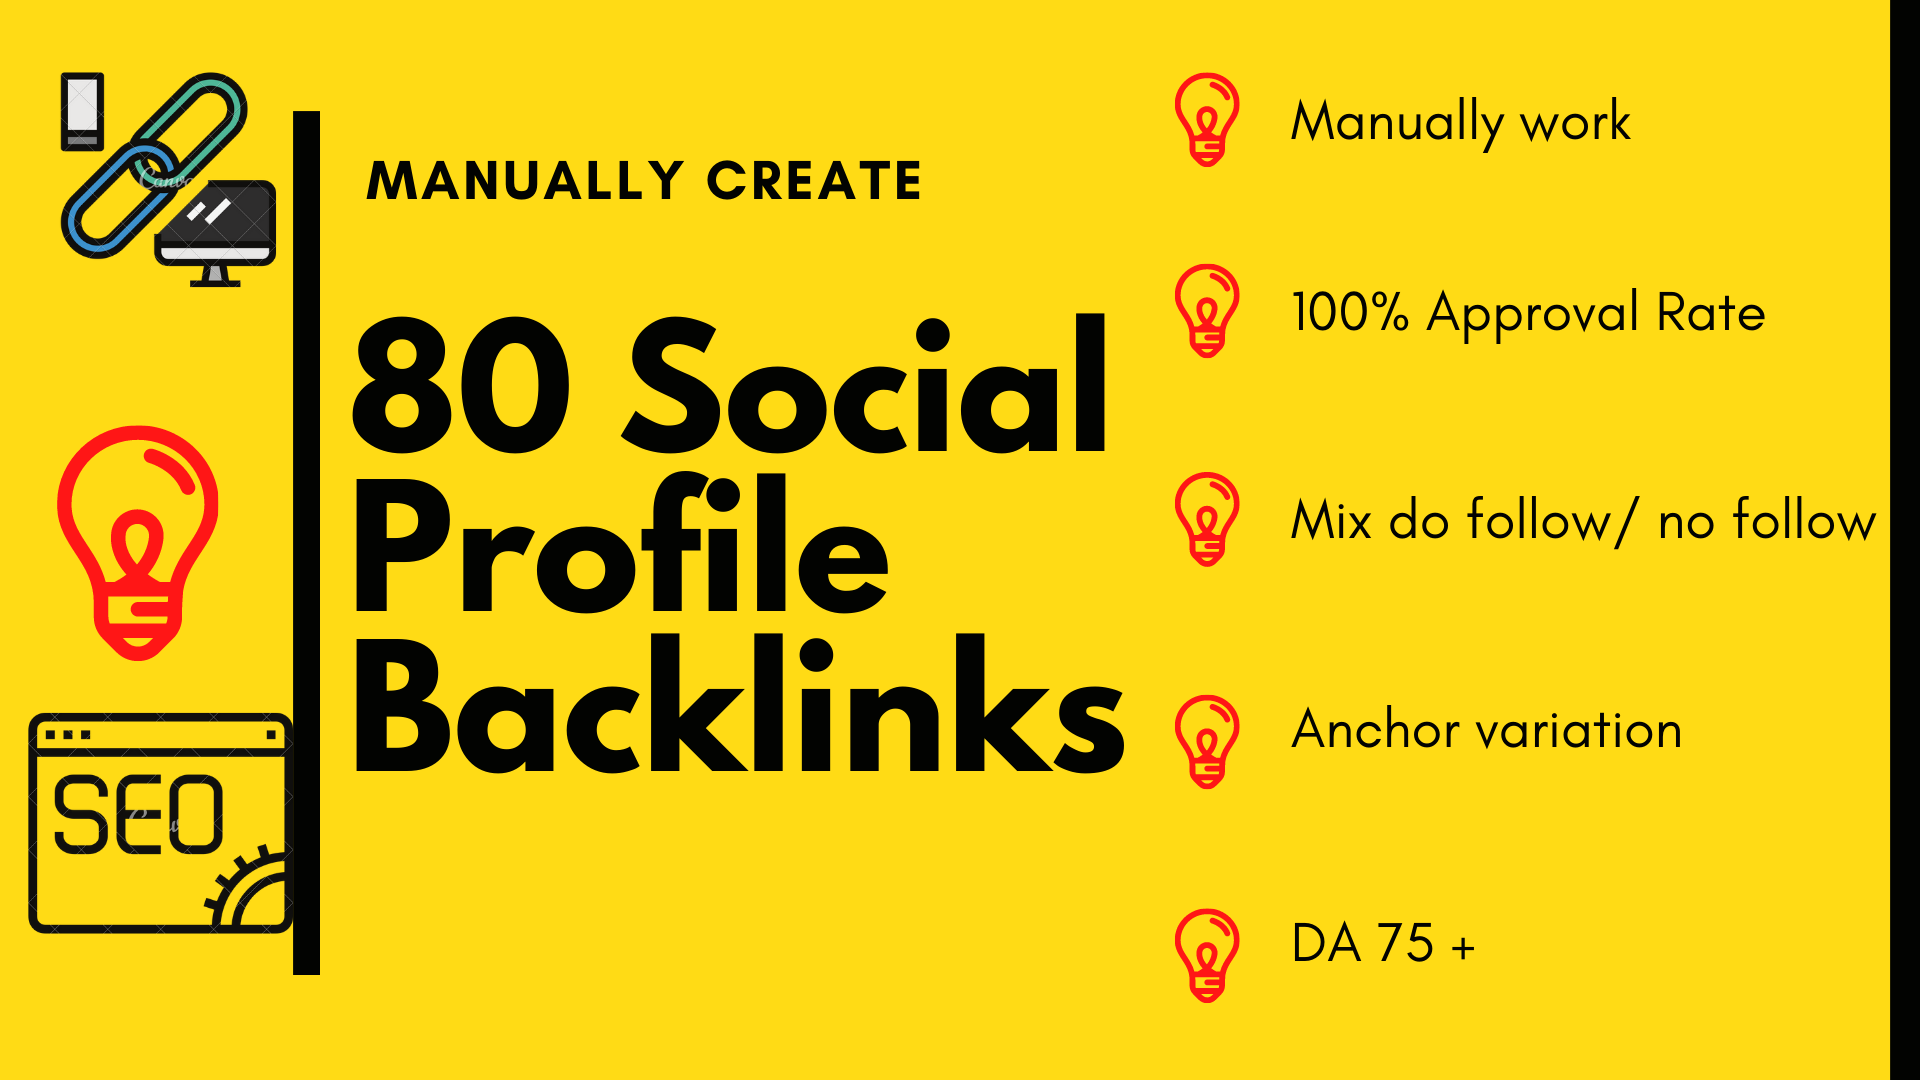 80 Manually created High Authority social Profile Backlinks.